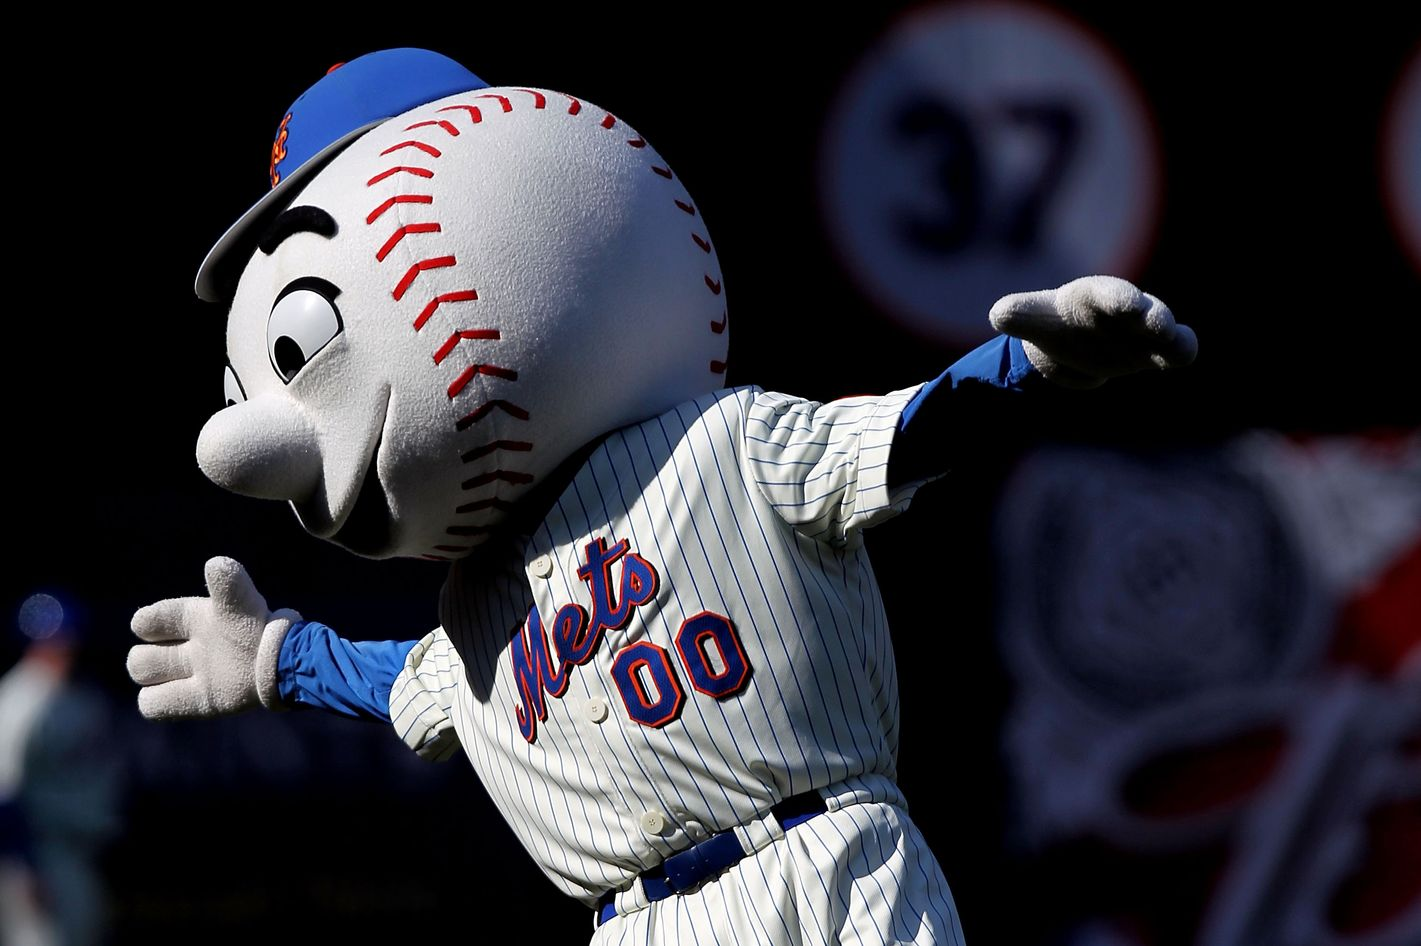 NEW YORK - APRIL 05: Mr. Met dances during the game between the New York Mets and the Florida Marlins during their Opening Day Game at Citi Field on April 5, 2010 in the Flushing neighborhood of the Queens borough of New York City.  (Photo by Nick Laham/Getty Images) *** Local Caption *** Mr. Met